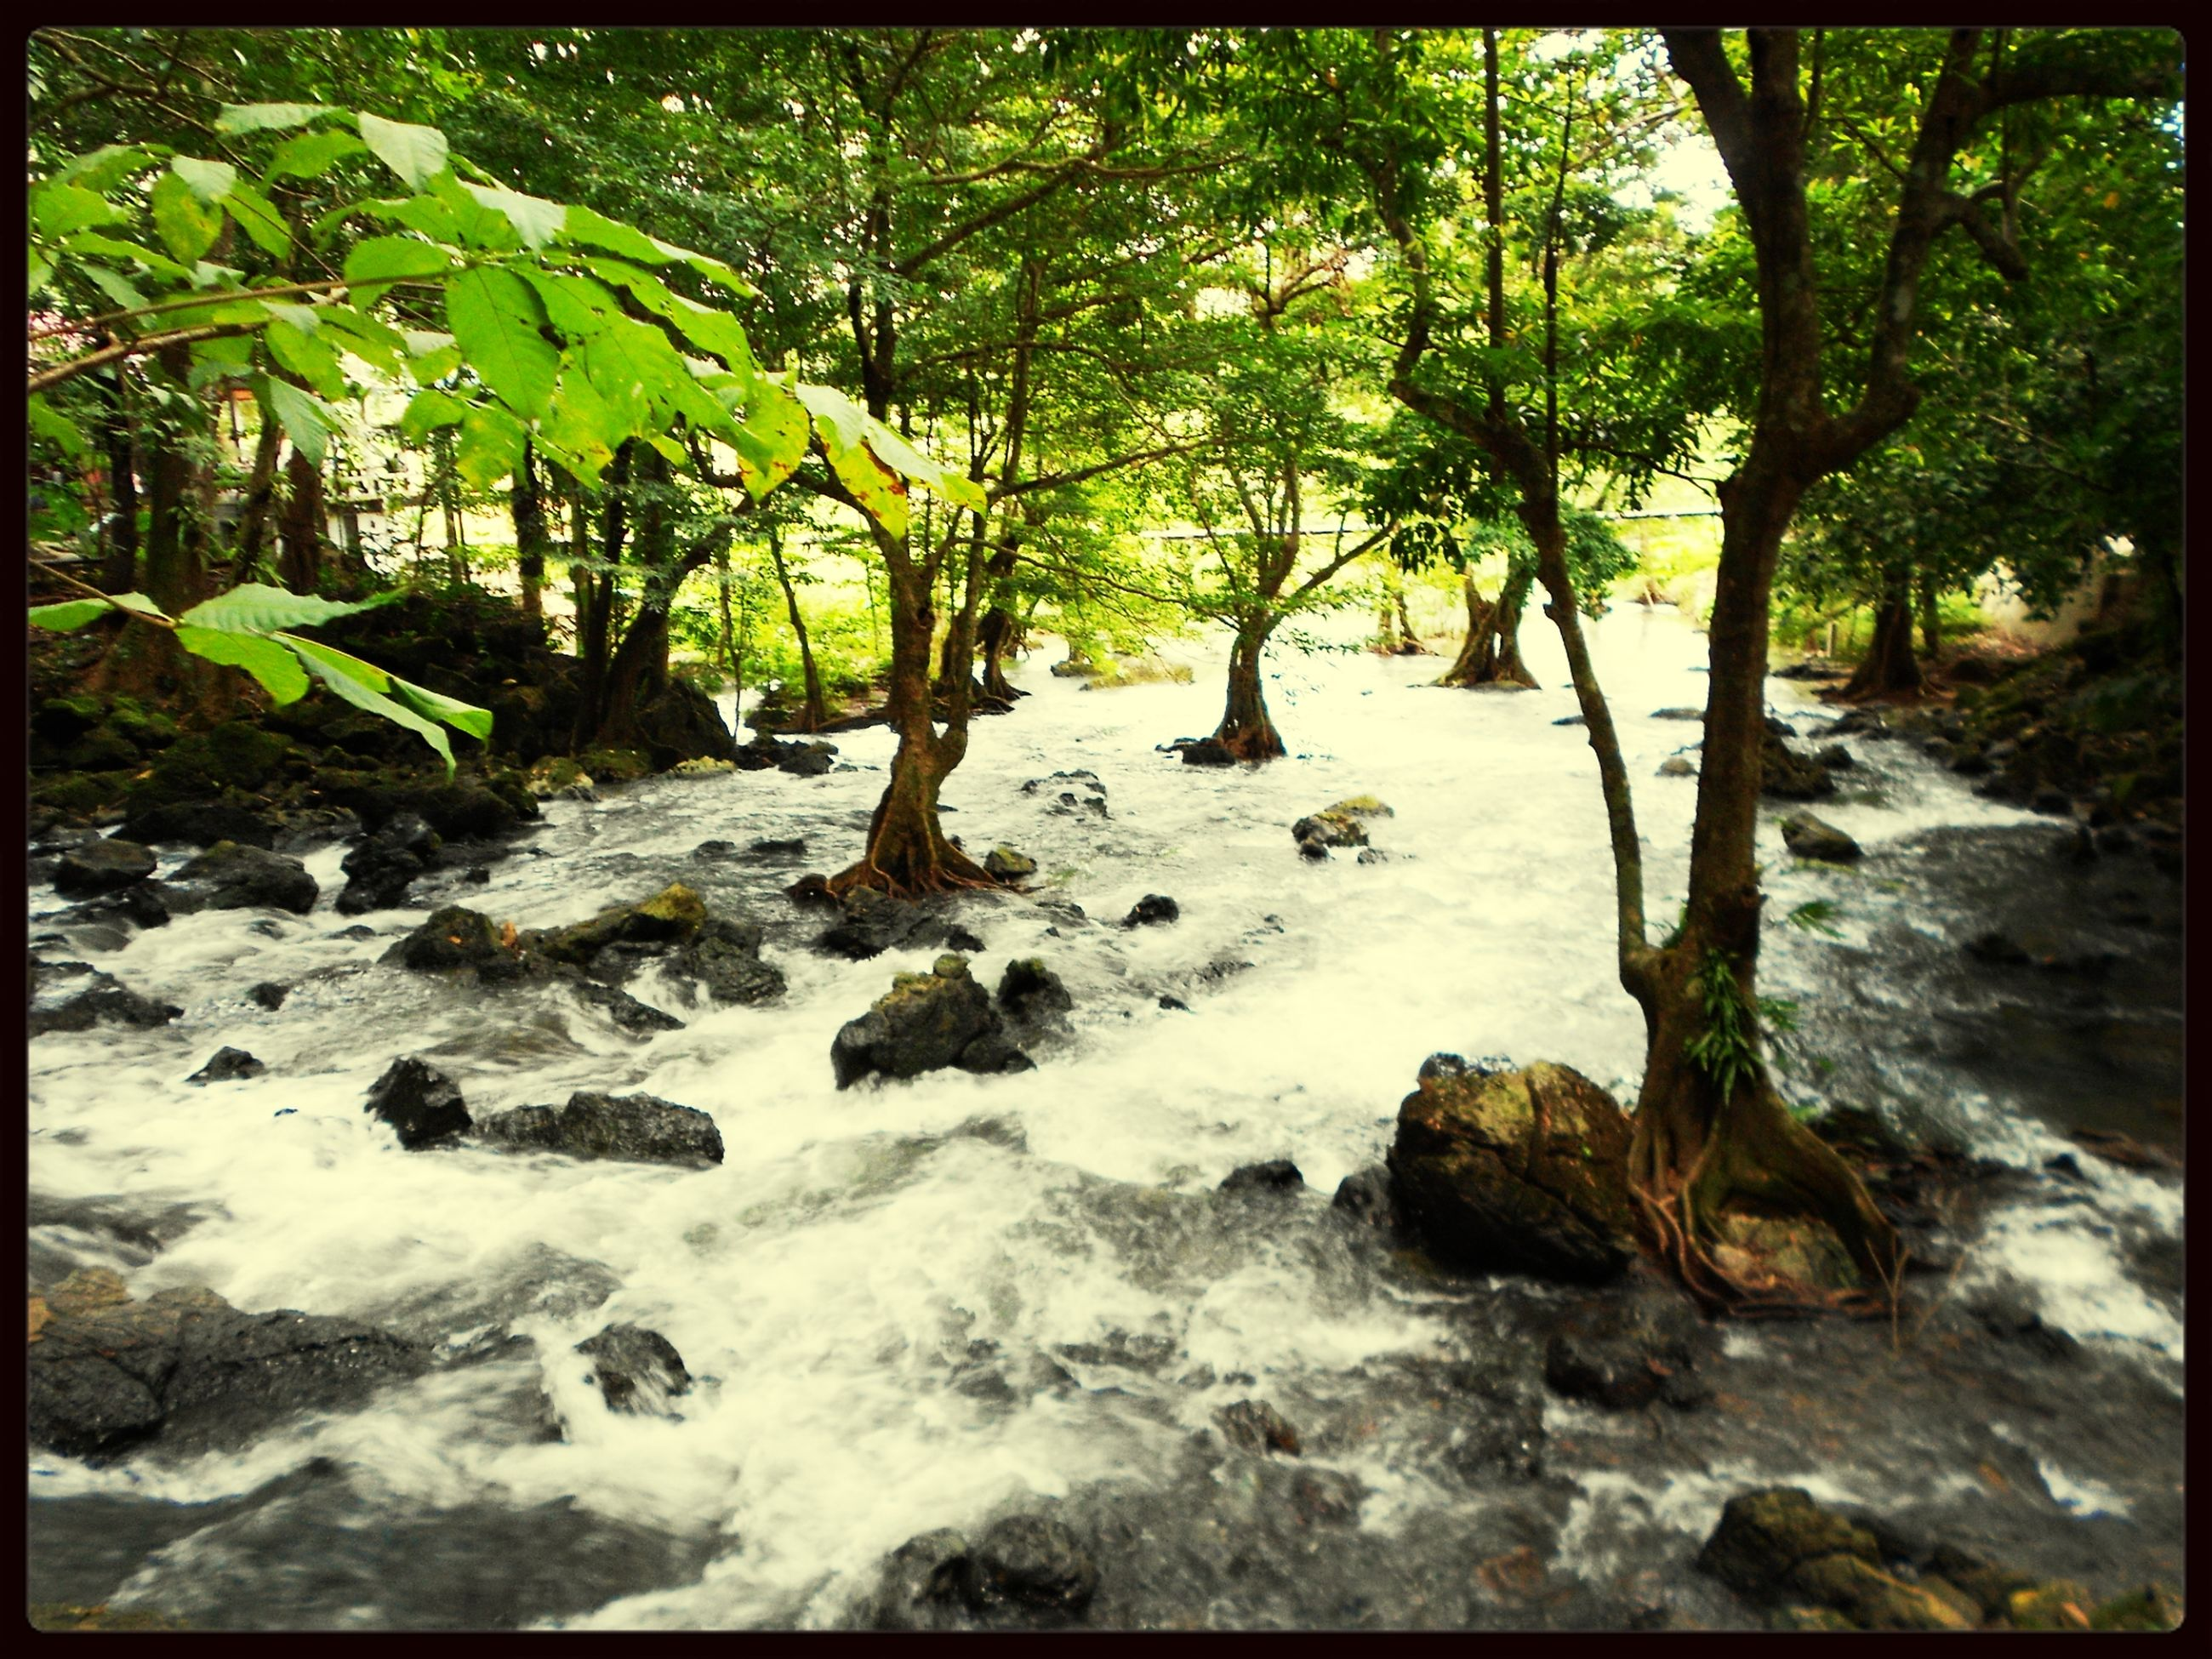 transfer print, auto post production filter, tree, water, nature, rock - object, beauty in nature, tranquility, growth, scenics, forest, tranquil scene, stream, green color, day, sunlight, rock, outdoors, branch, plant